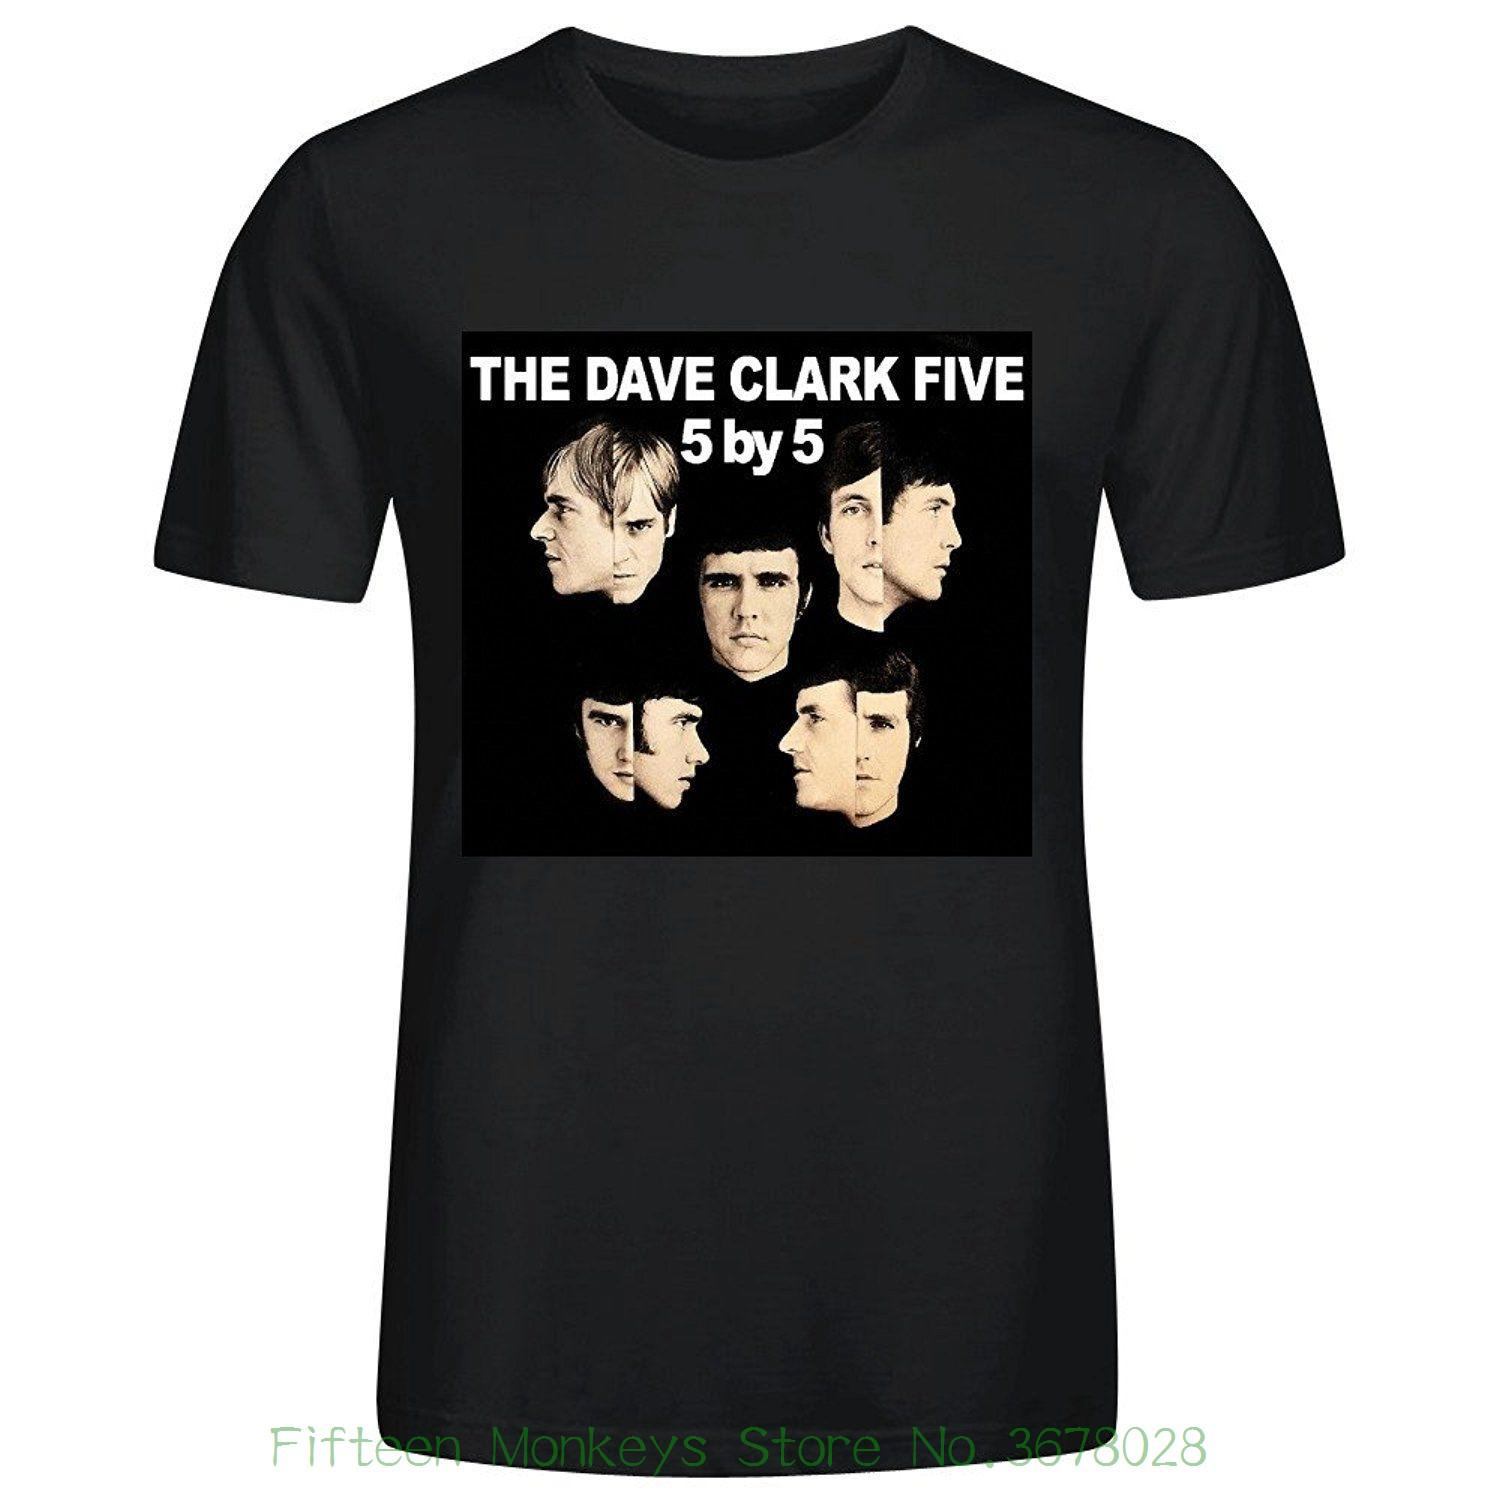 2019 Marke T-shirt Homme Tees Mode Herren Die Dave Clark Five 5 By 5 Graphic Printed Lustiges T-Shirt